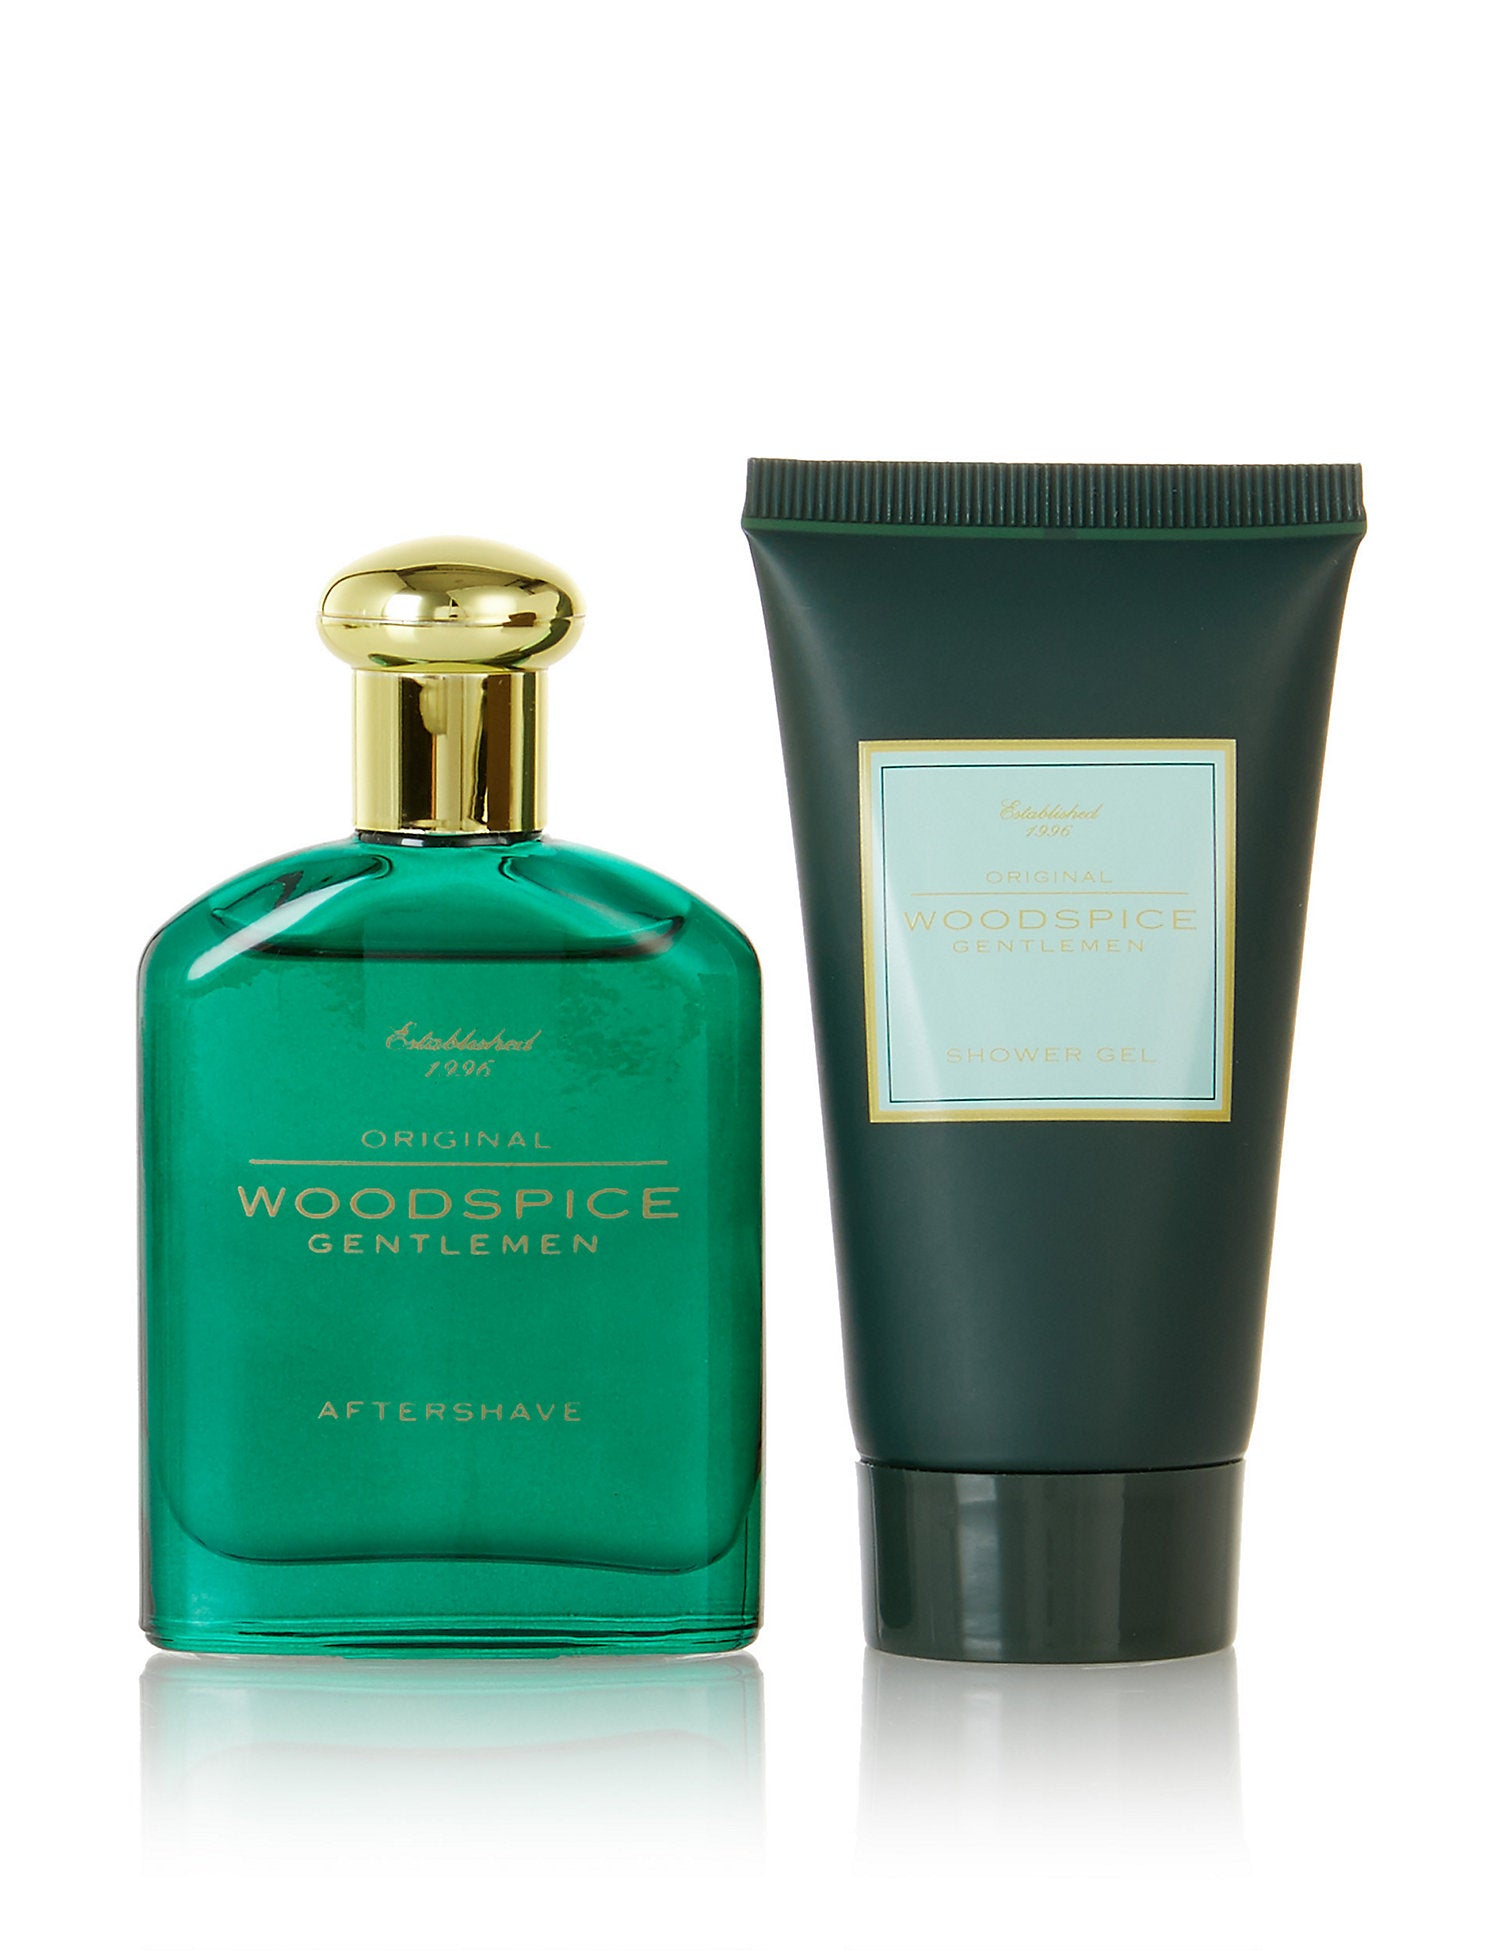 Woodspice Aftershave Gift Set